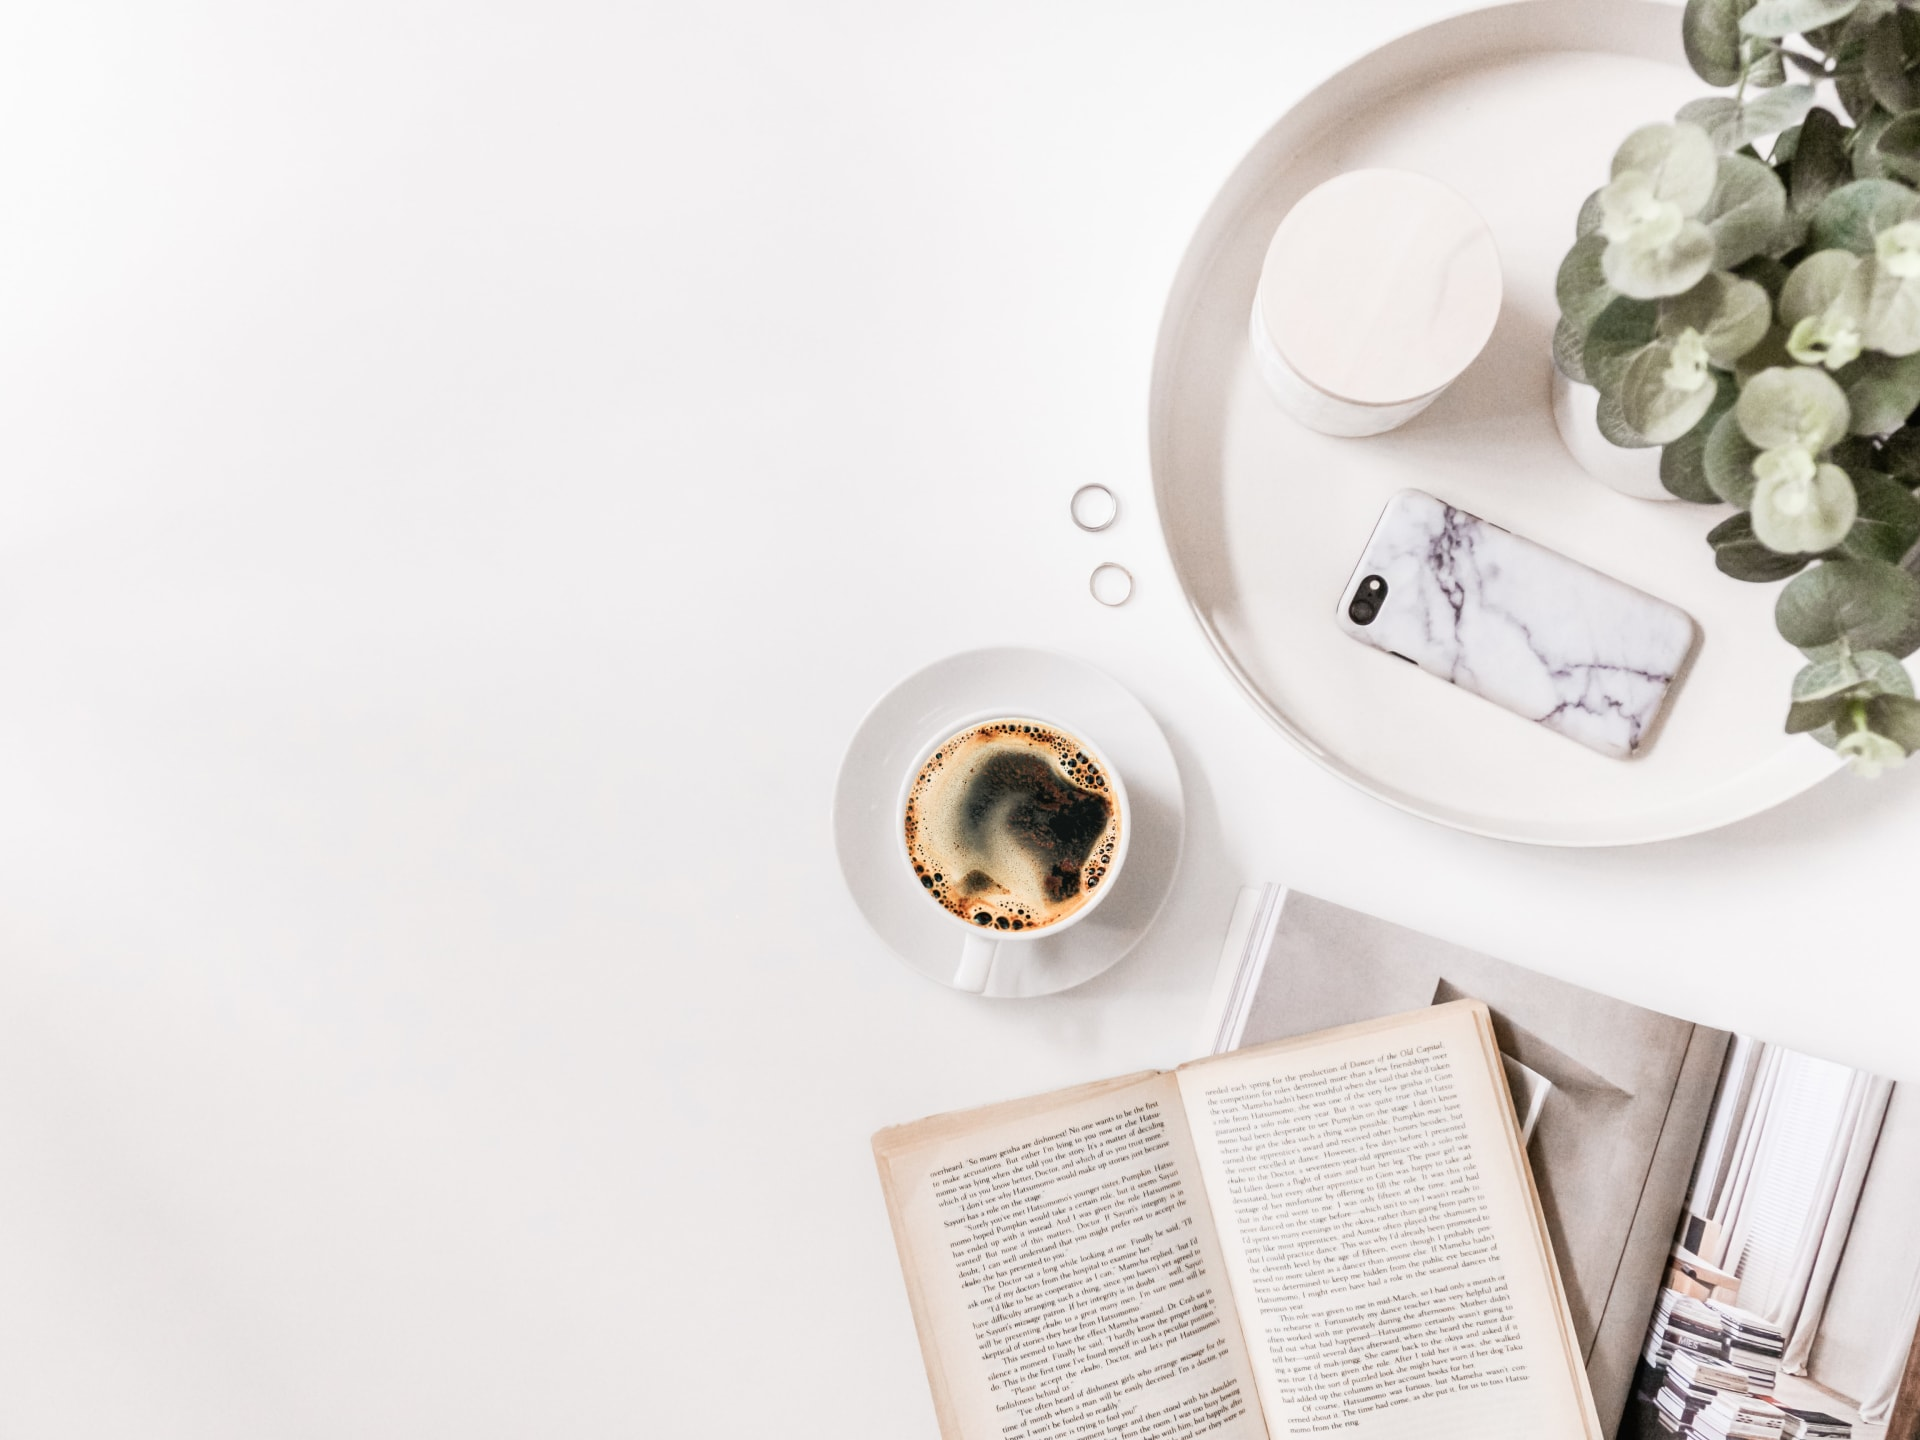 10 Good Reads During Downtime